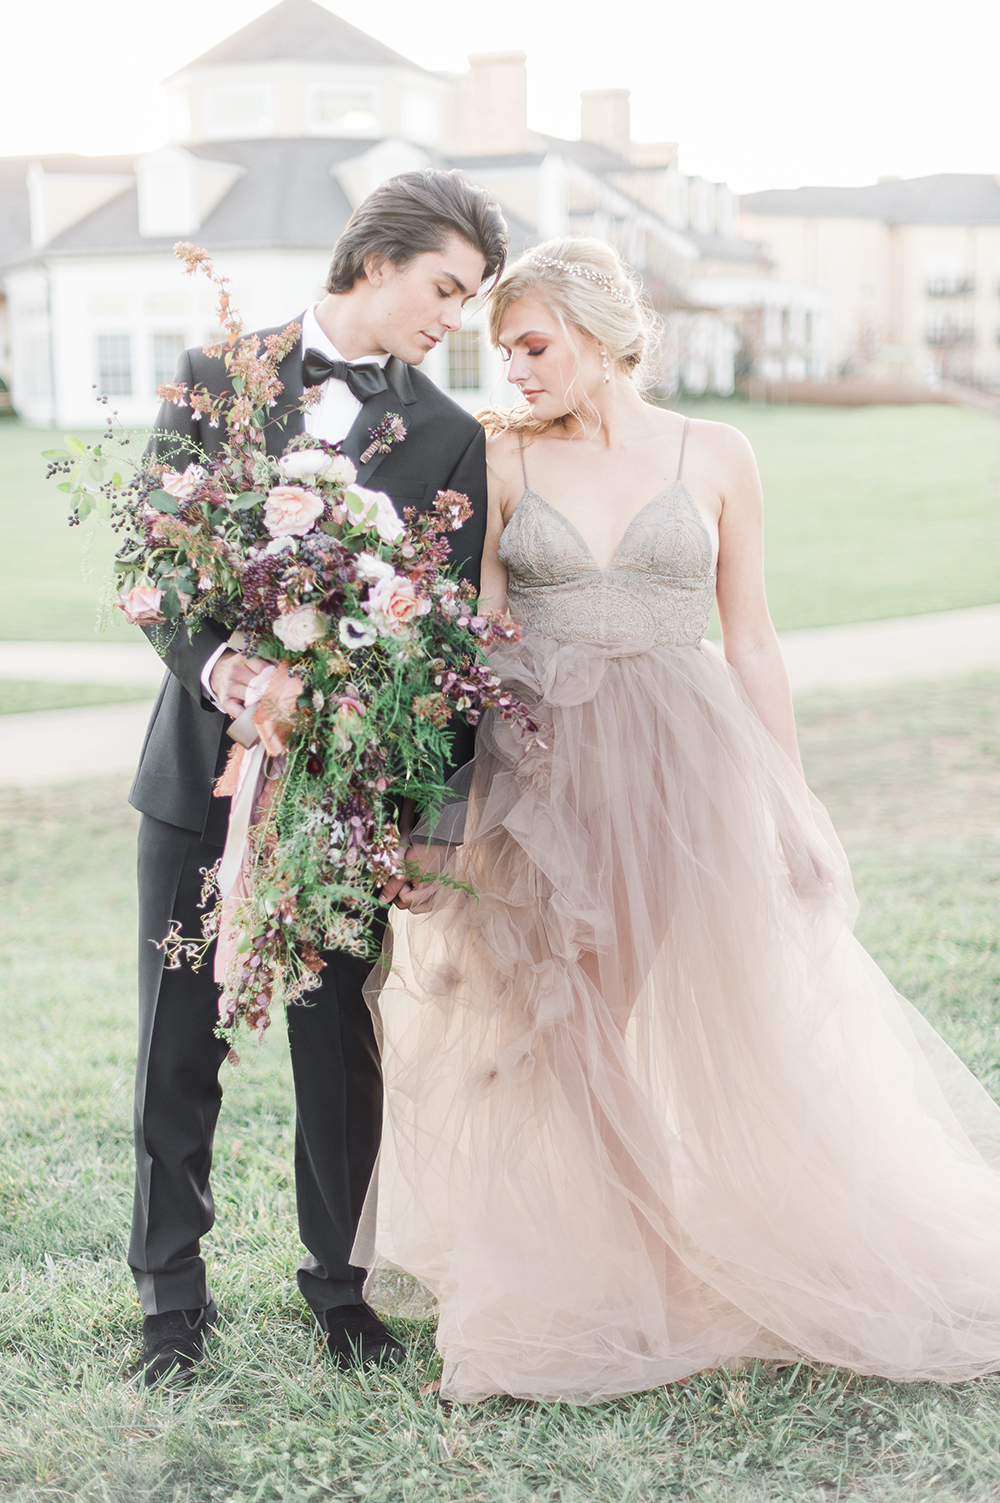 Ethereal Wedding Inspiration with Vintage Accents - photo by Jenny B Photos http://ruffledblog.com/ethereal-wedding-inspiration-with-vintage-accents